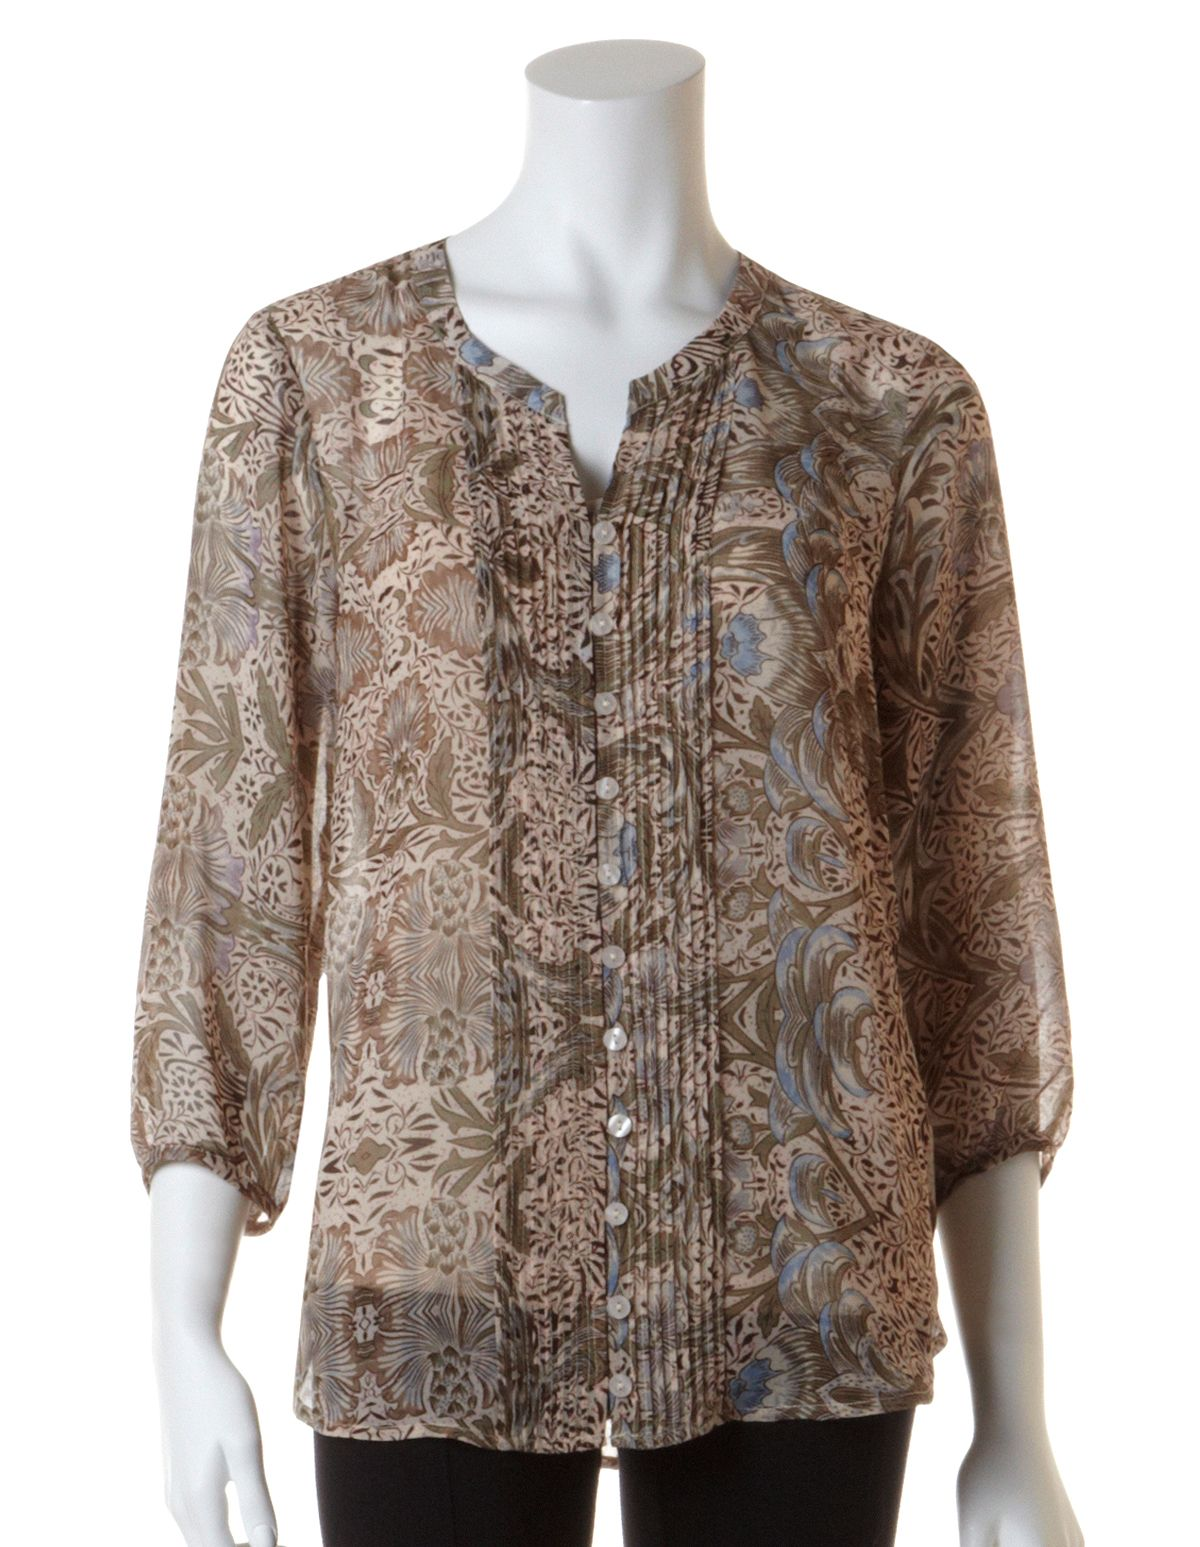 Brown Chiffon Blouse with CamiBrown Chiffon Blouse with Cami, Brown/Blue/Taupe